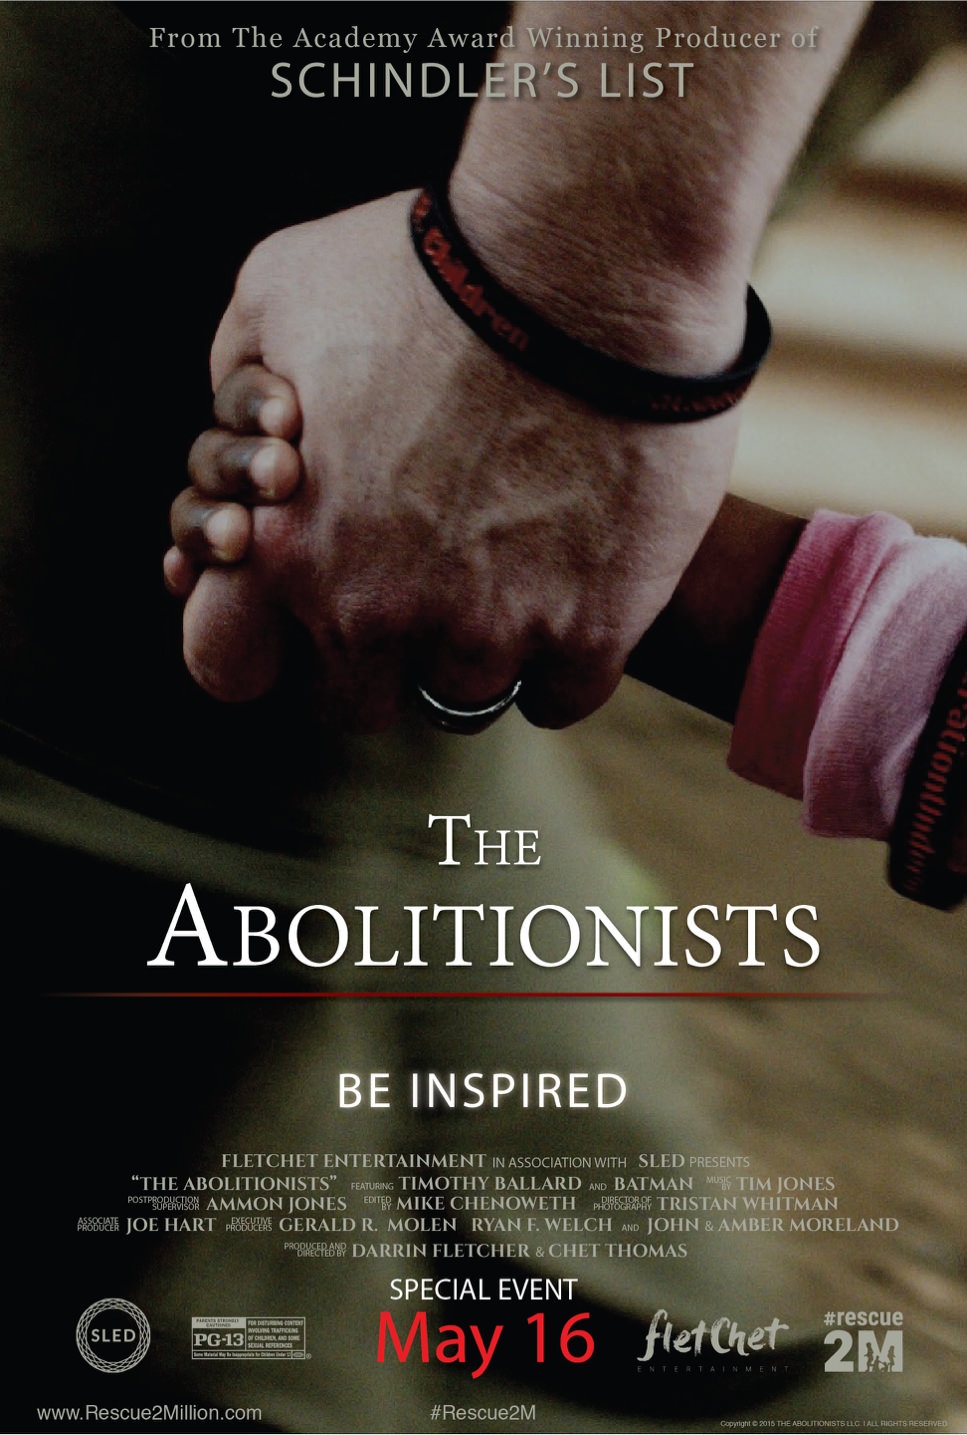 The Abolitionists movie power | Courtesy of TheAbolitionistsMovie.com, St. George News